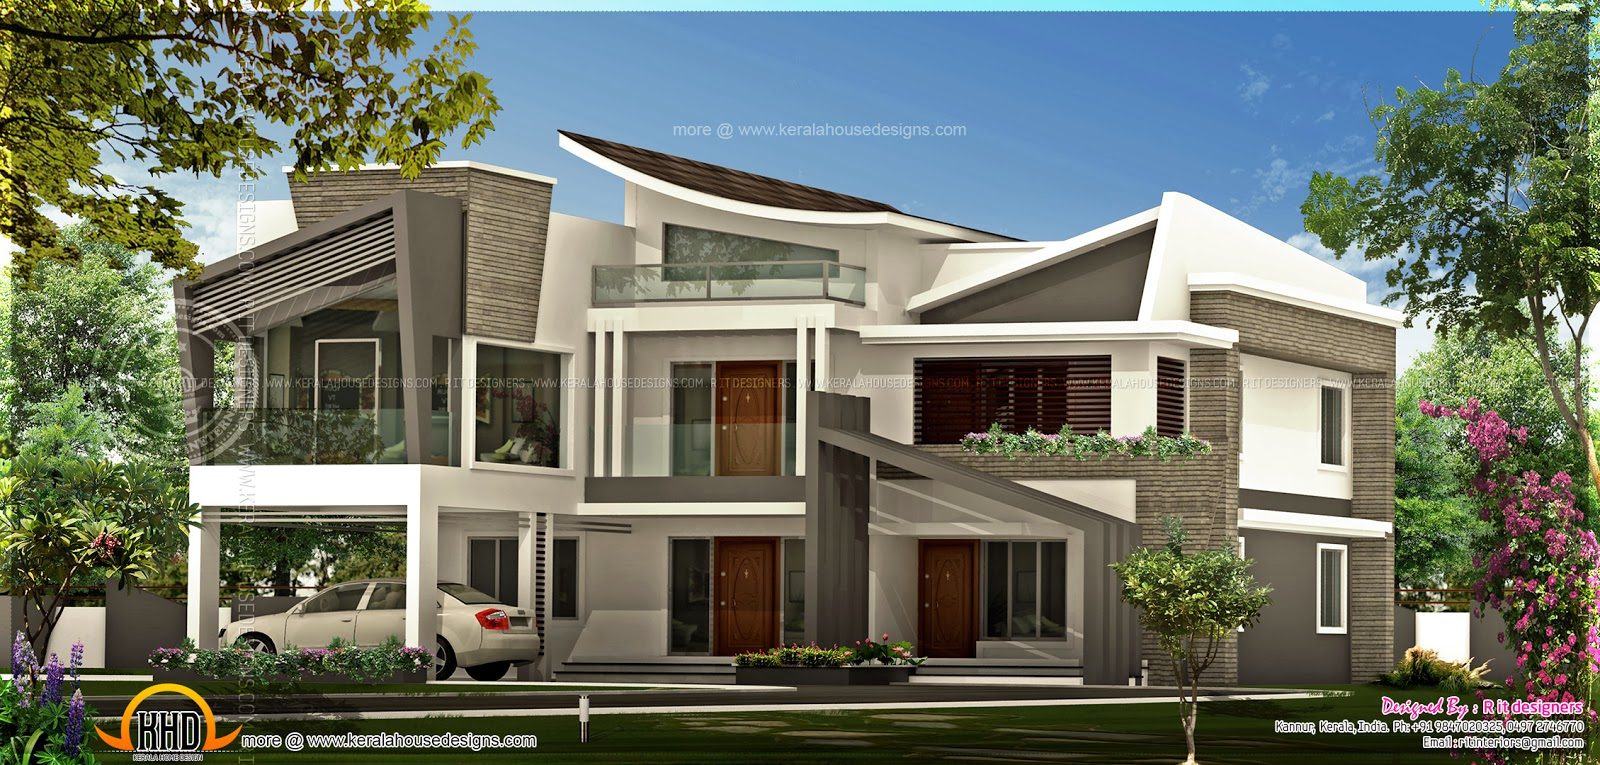 Top 19 photos ideas for unique modern houses home plans for Unique modern house designs